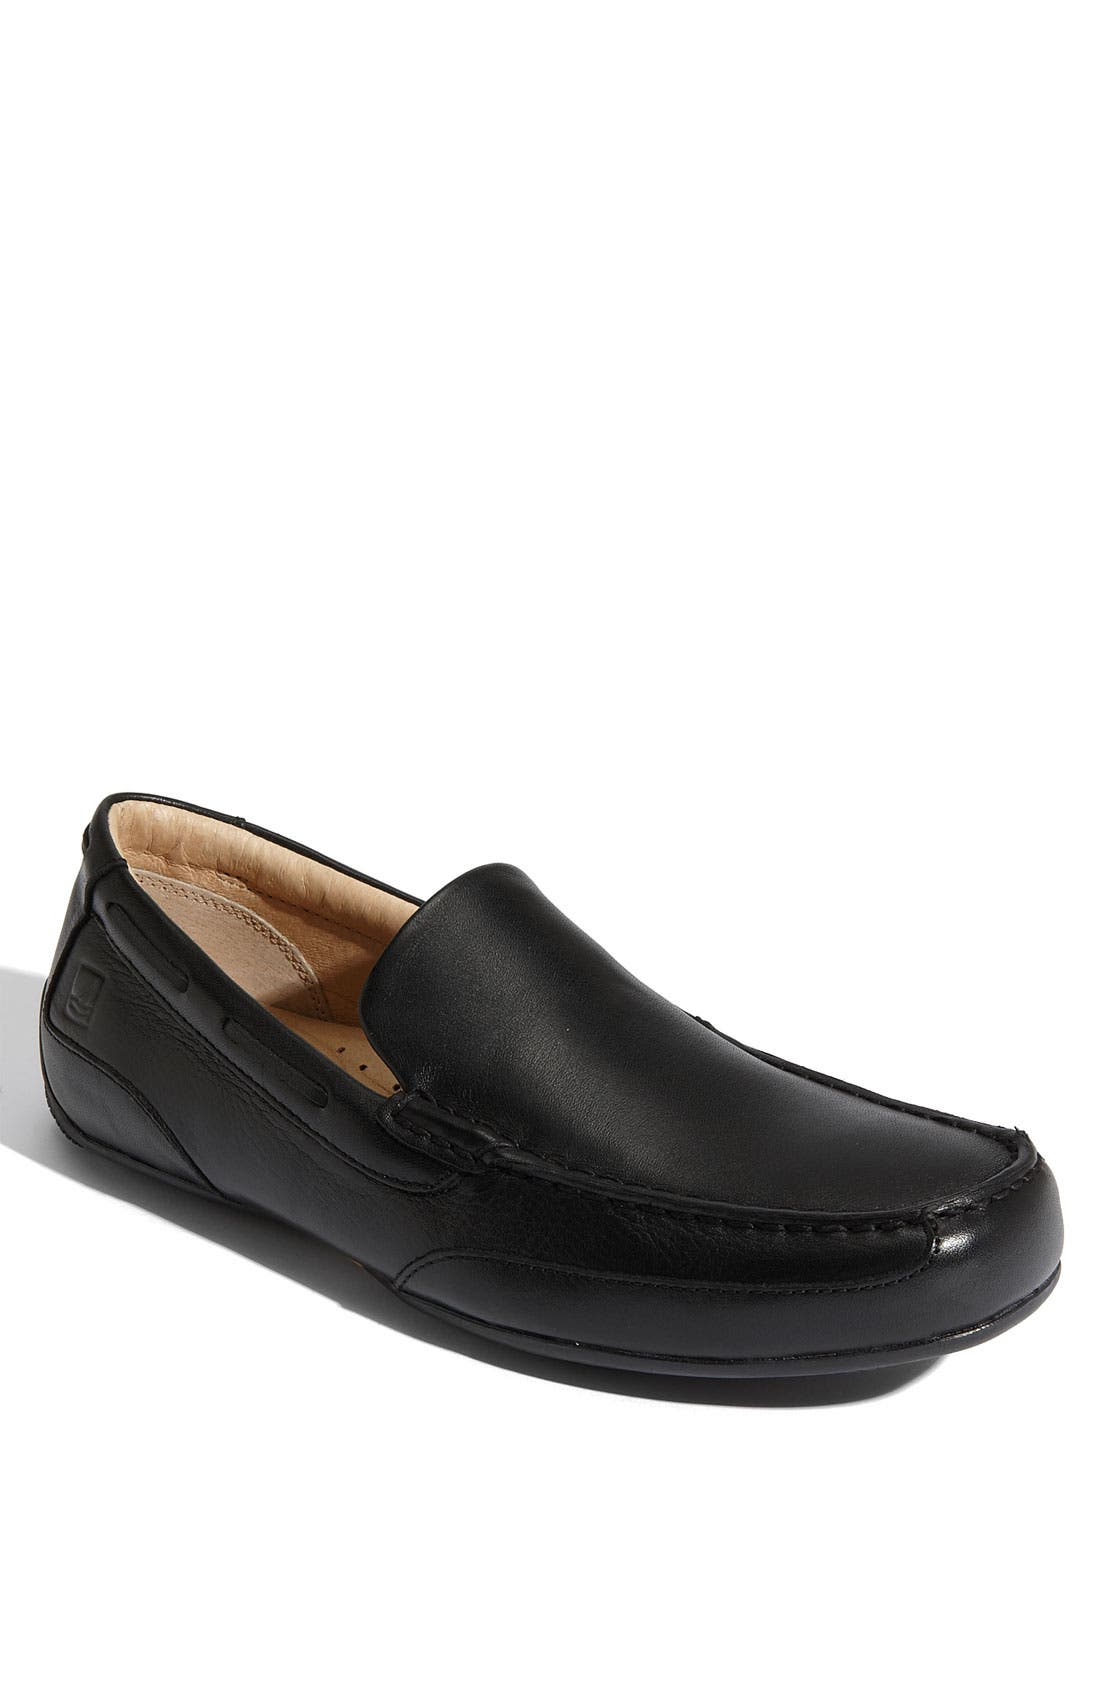 Main Image - Sperry Top-Sider® 'Navigator Venetian' Driving Shoe